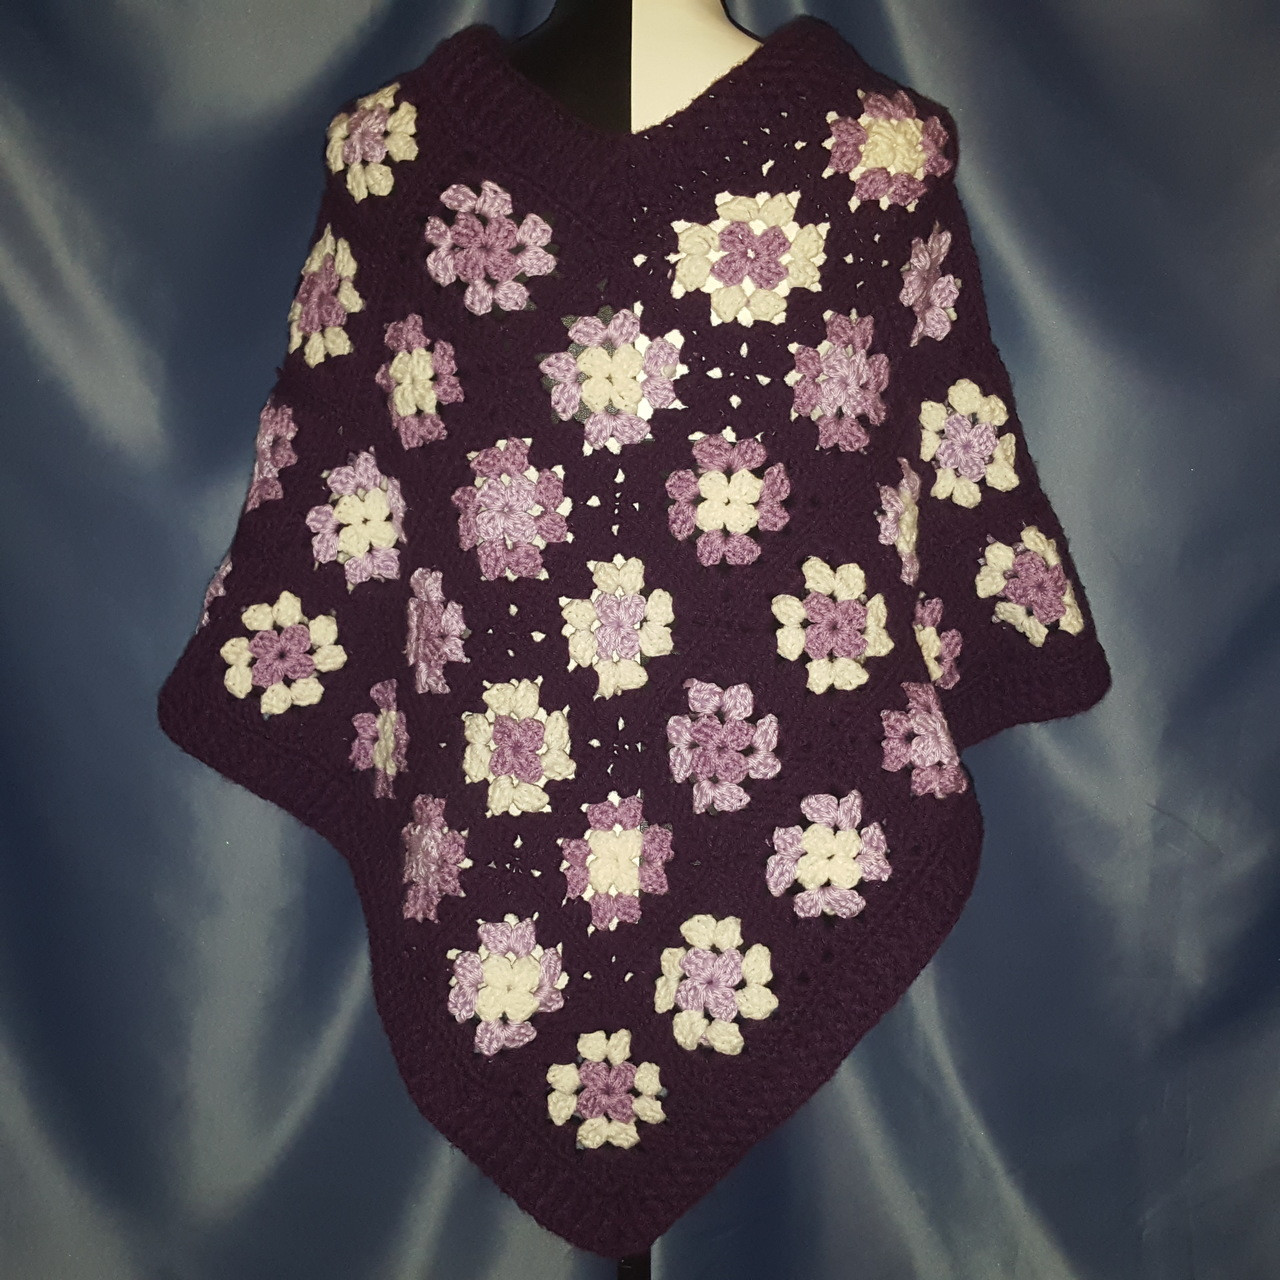 Granny Square Poncho in multiple Purples and White.